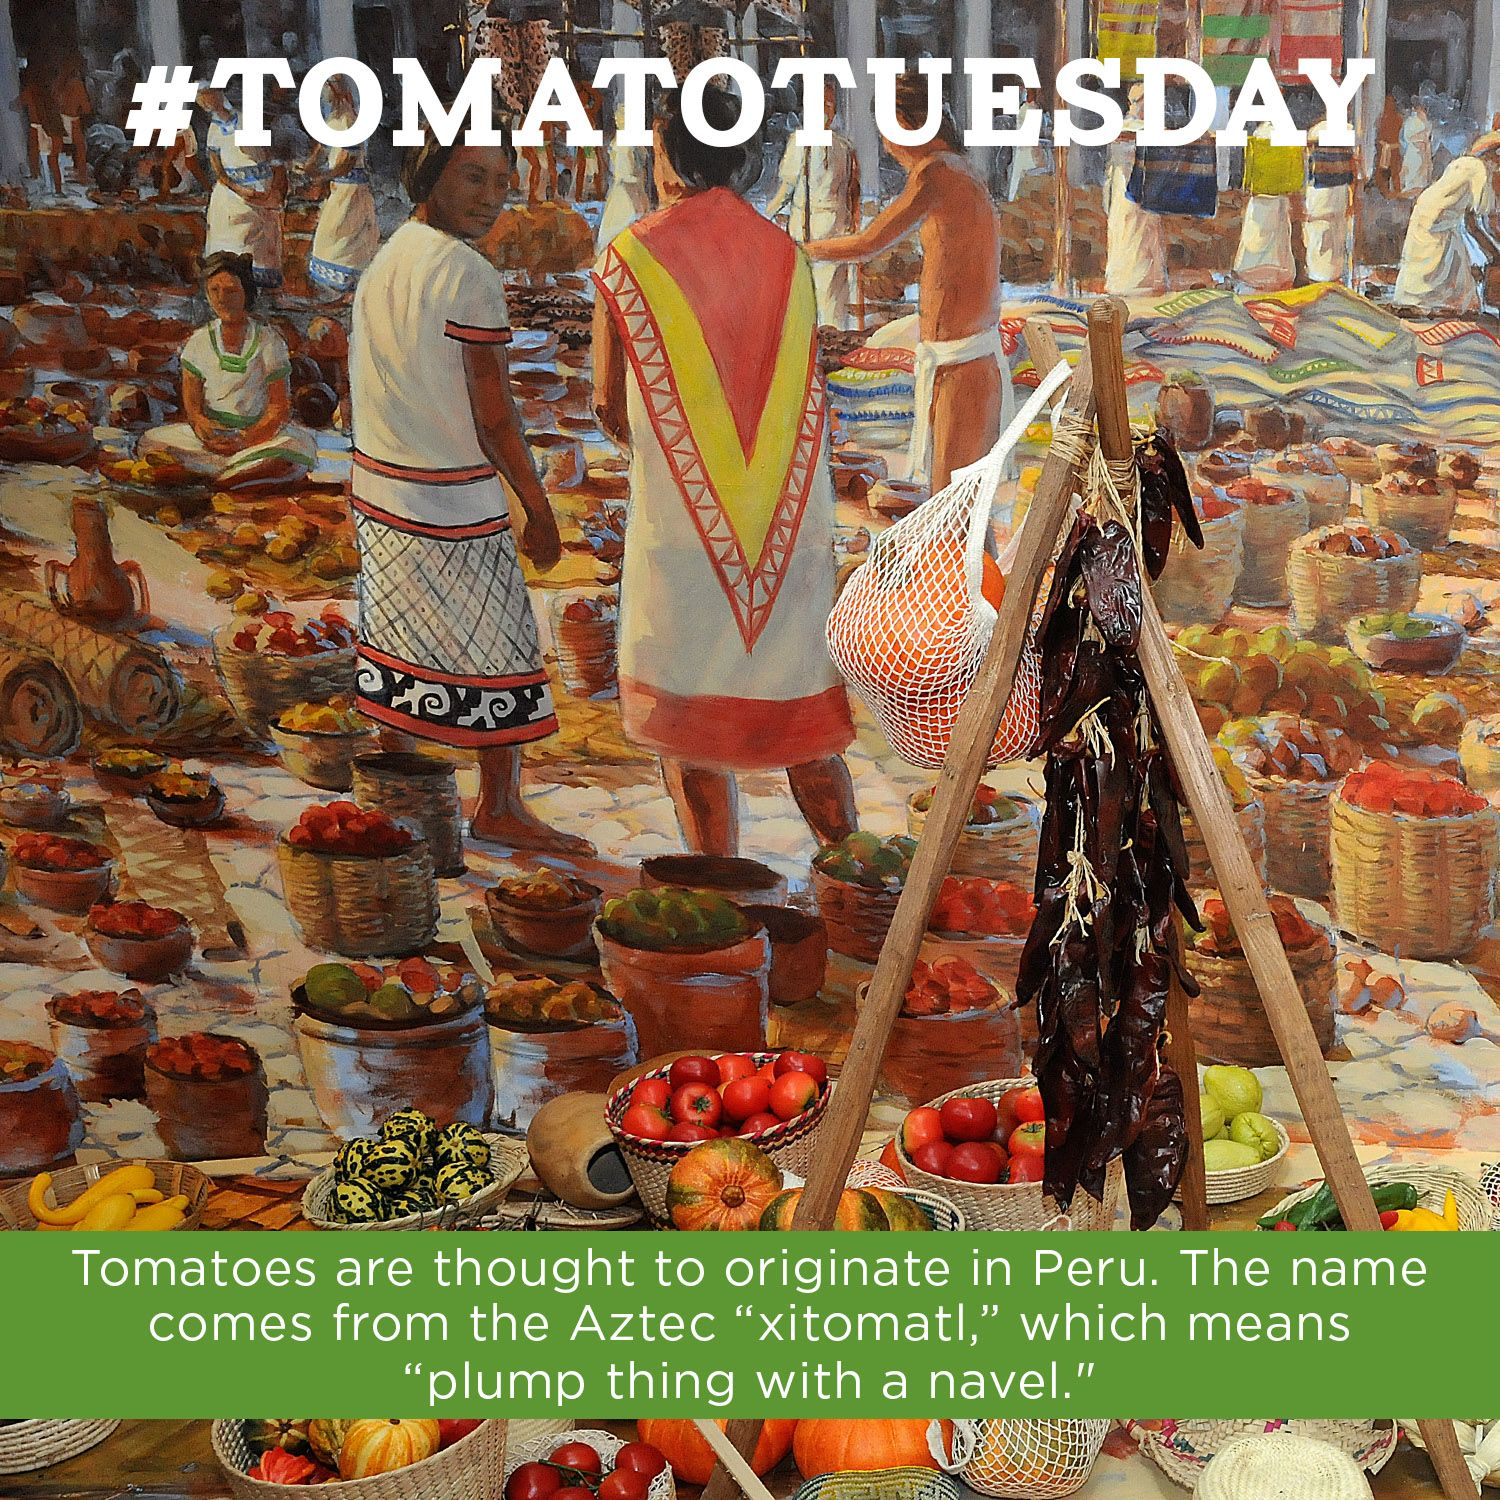 Tomatoes have come a long way… from Peru to Maine! #TomatoTuesday